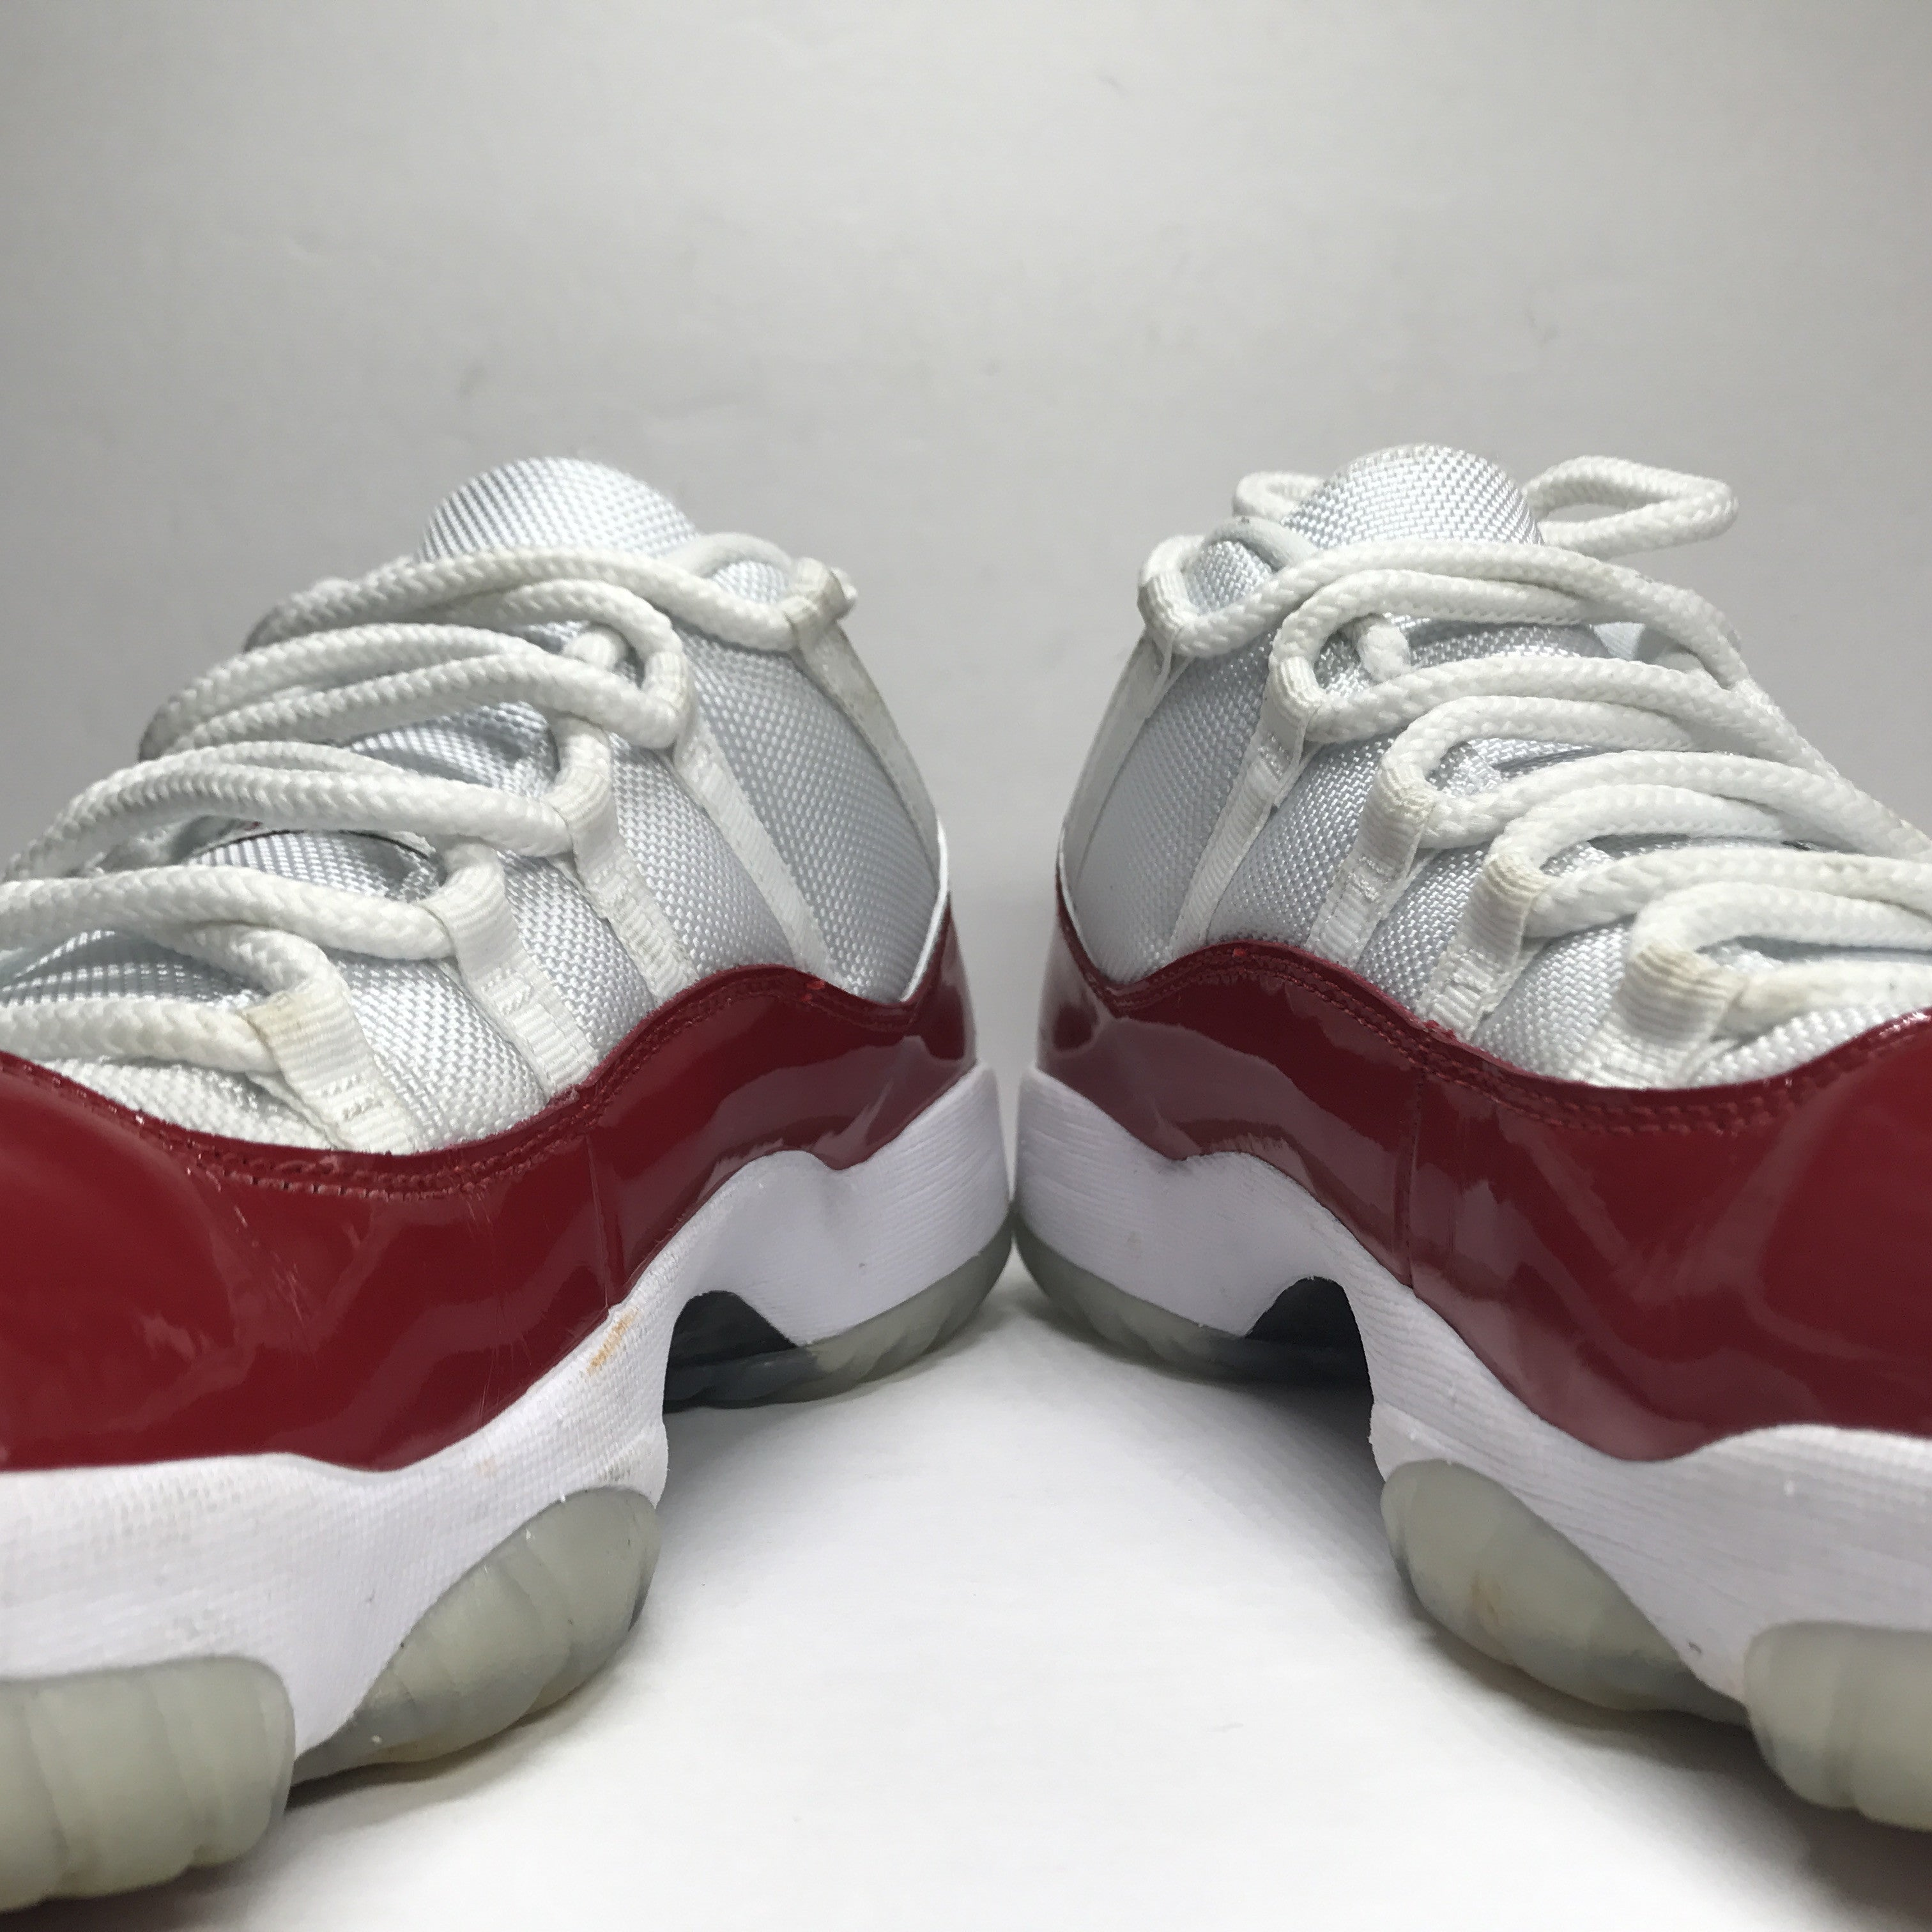 Nike Air Jordan 11 XI Low Cherry Red Size 9.5